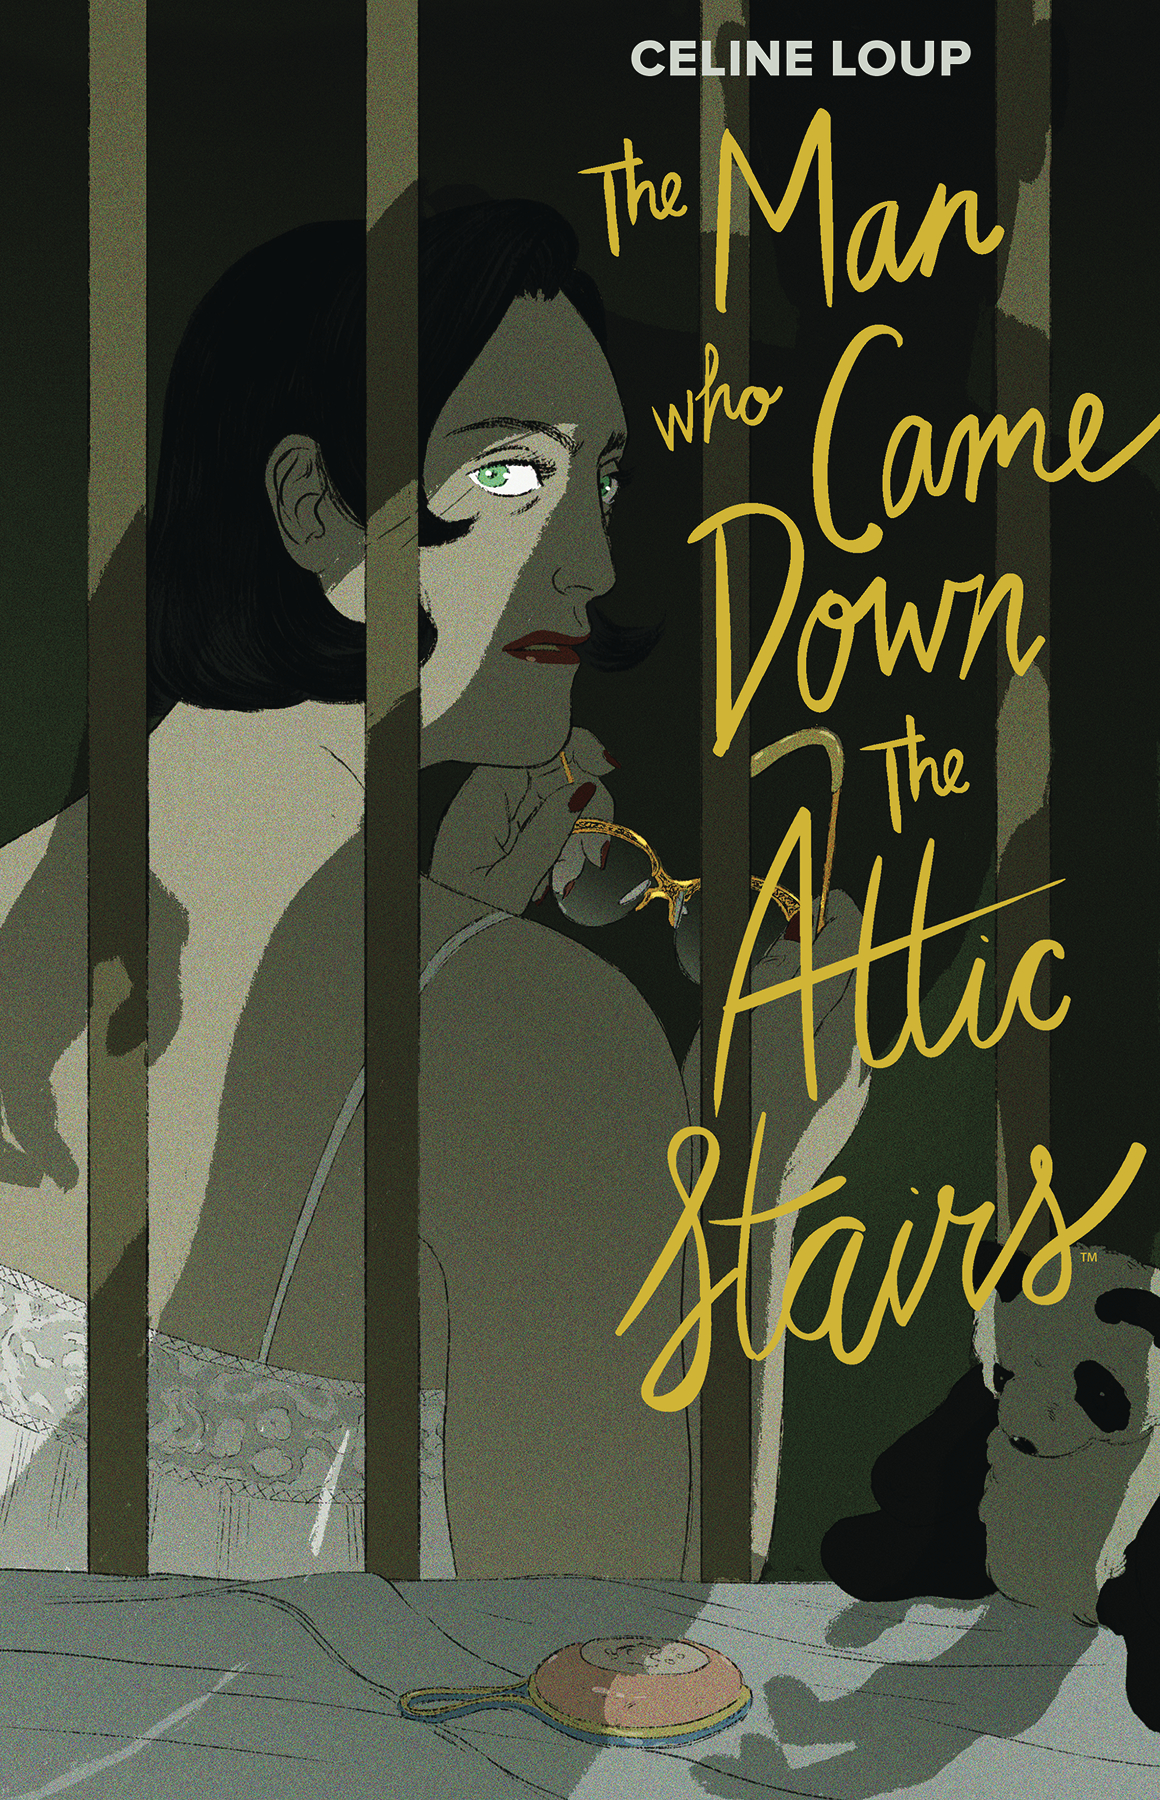 Graphic Novels for Fall 2019: The Man Who Came Down the Attic Stairs